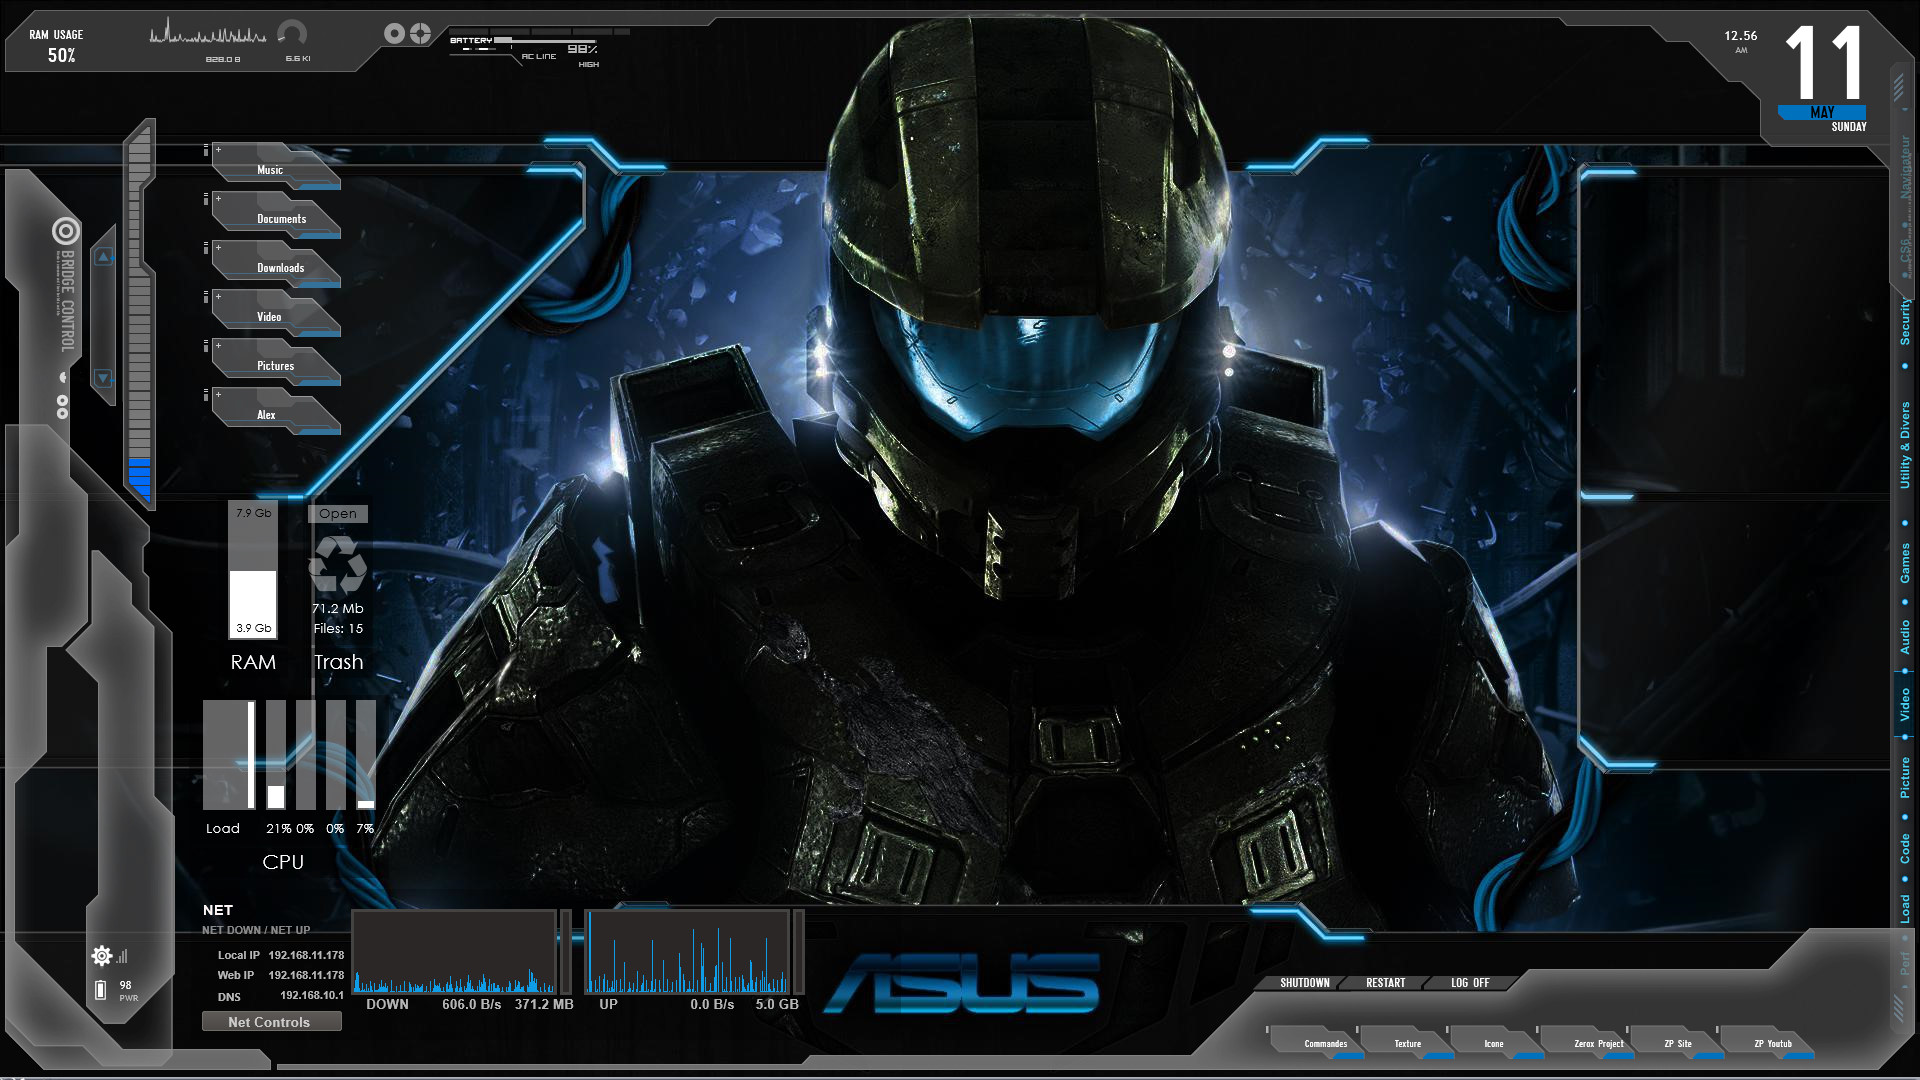 blue-space-future-tech-rainmeter-zerox-project-by-zeroxproject-dhw3dz-1920×1080-wallpaper-wp3603555